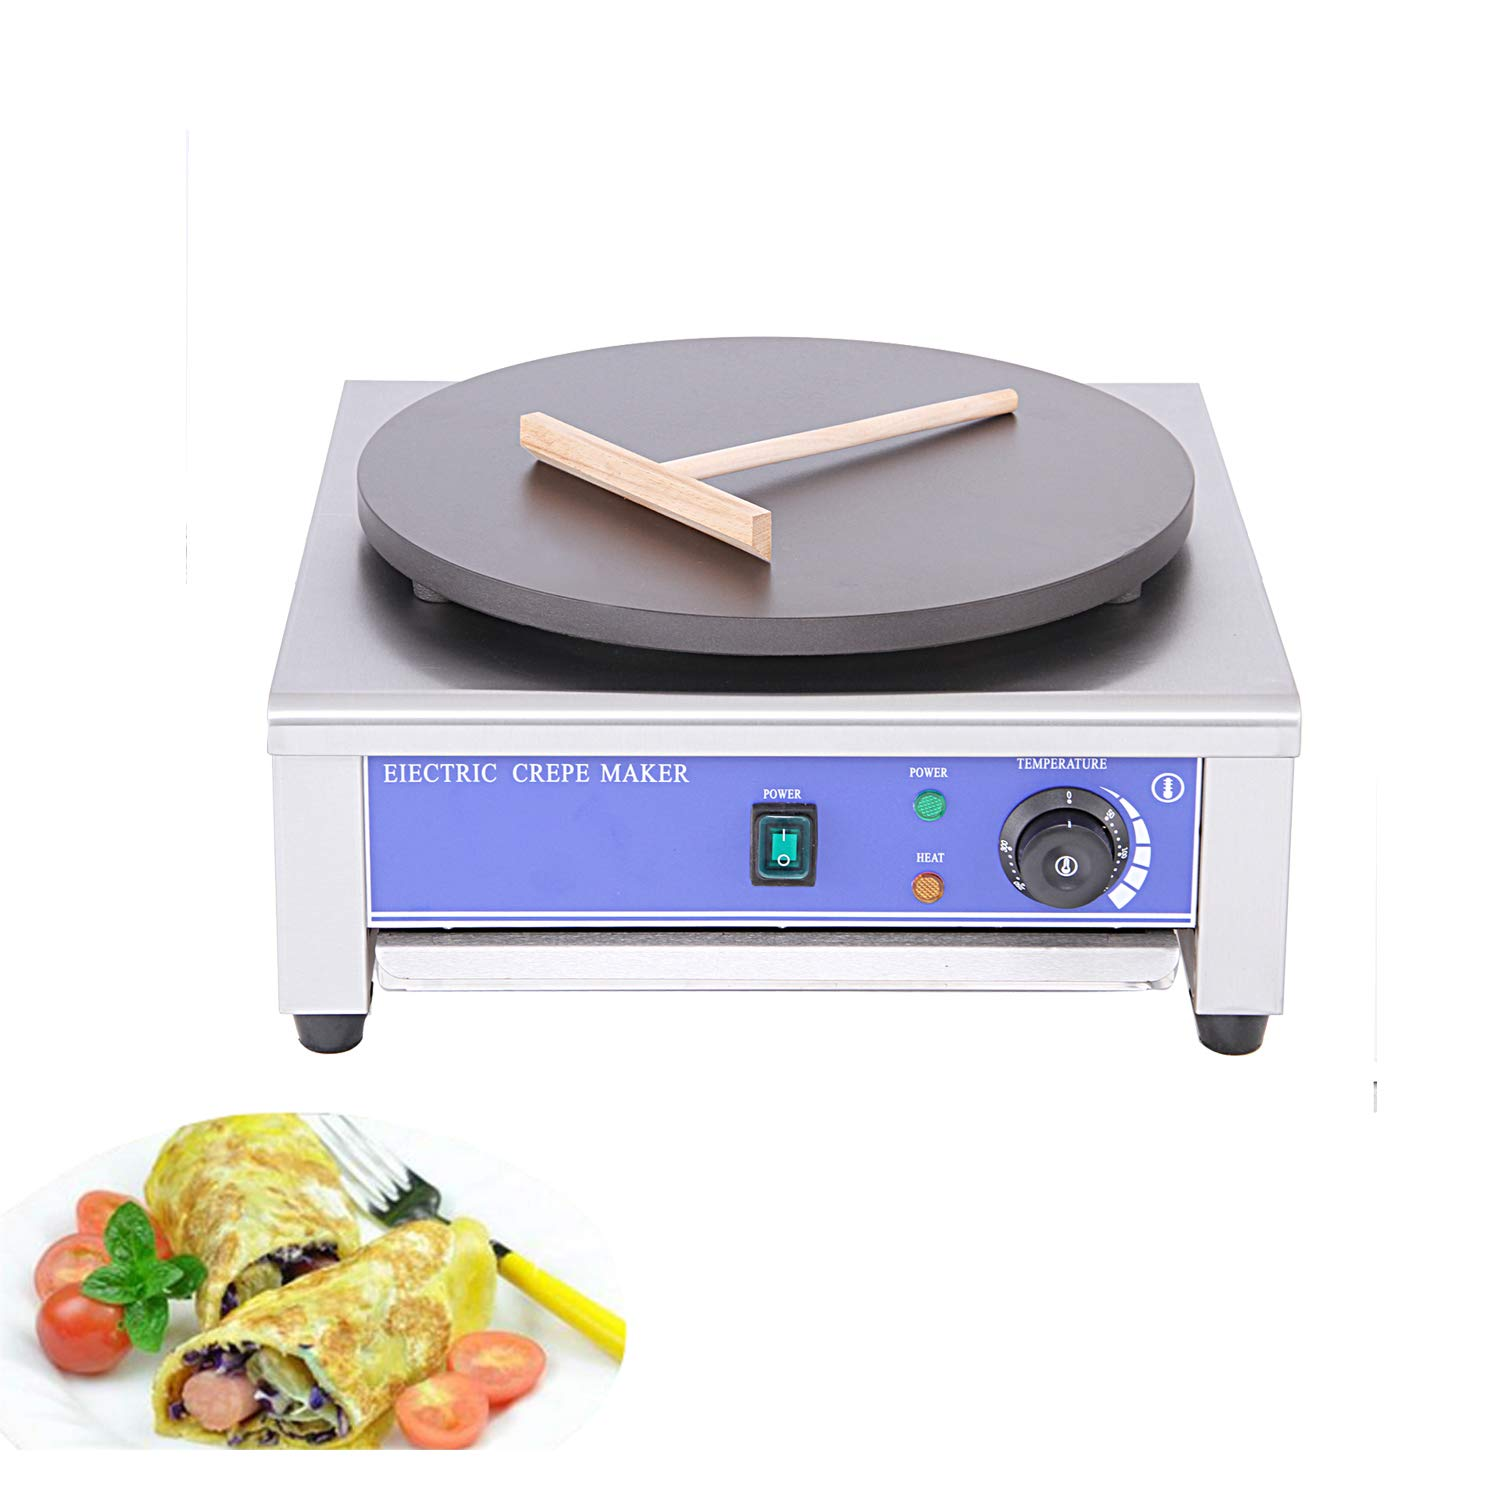 Proshopping 16'' Commercial Electric Crepe Maker, Large Pancakes Griddle Machine Stainless steel, Non Stick Crepe Pan - with Batter Spreader, 110V- for Blintzes, Eggs, Pancakes, Tortilla by Proshopping